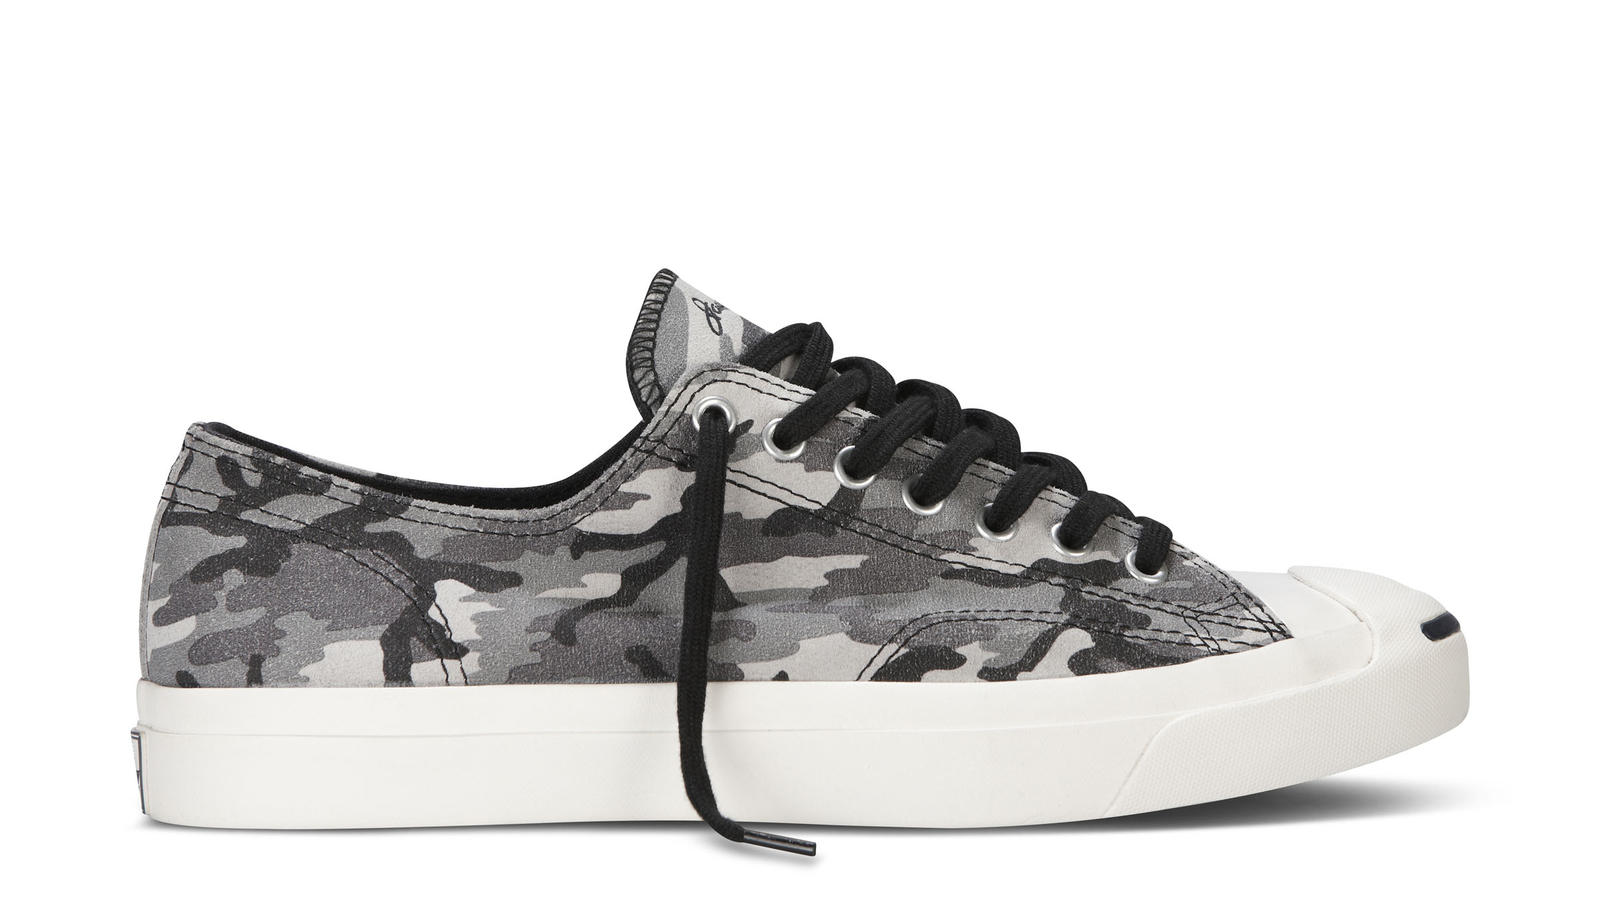 Converse Jack Purcell Camo Phantom Original